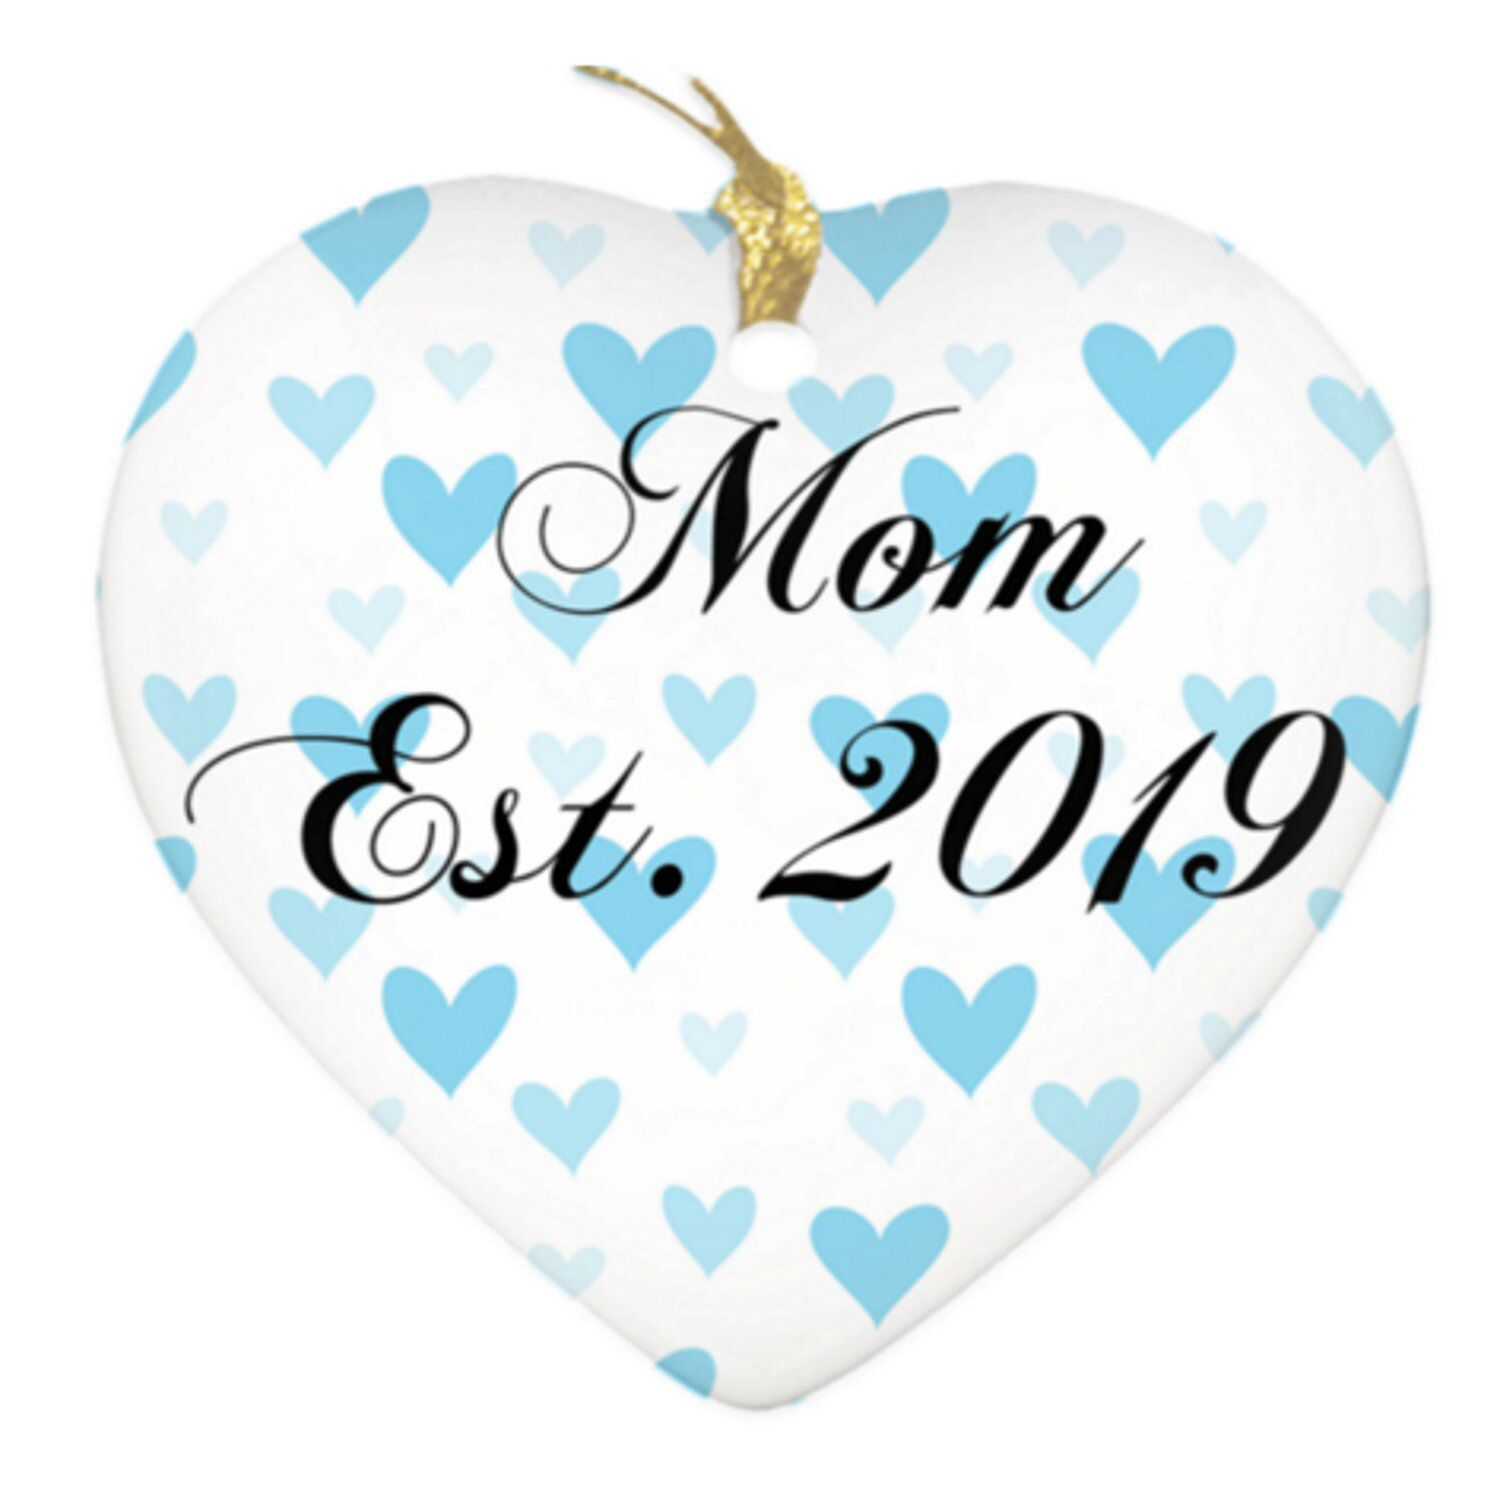 Excited to share this item from my etsy shop mom est 2019 blue